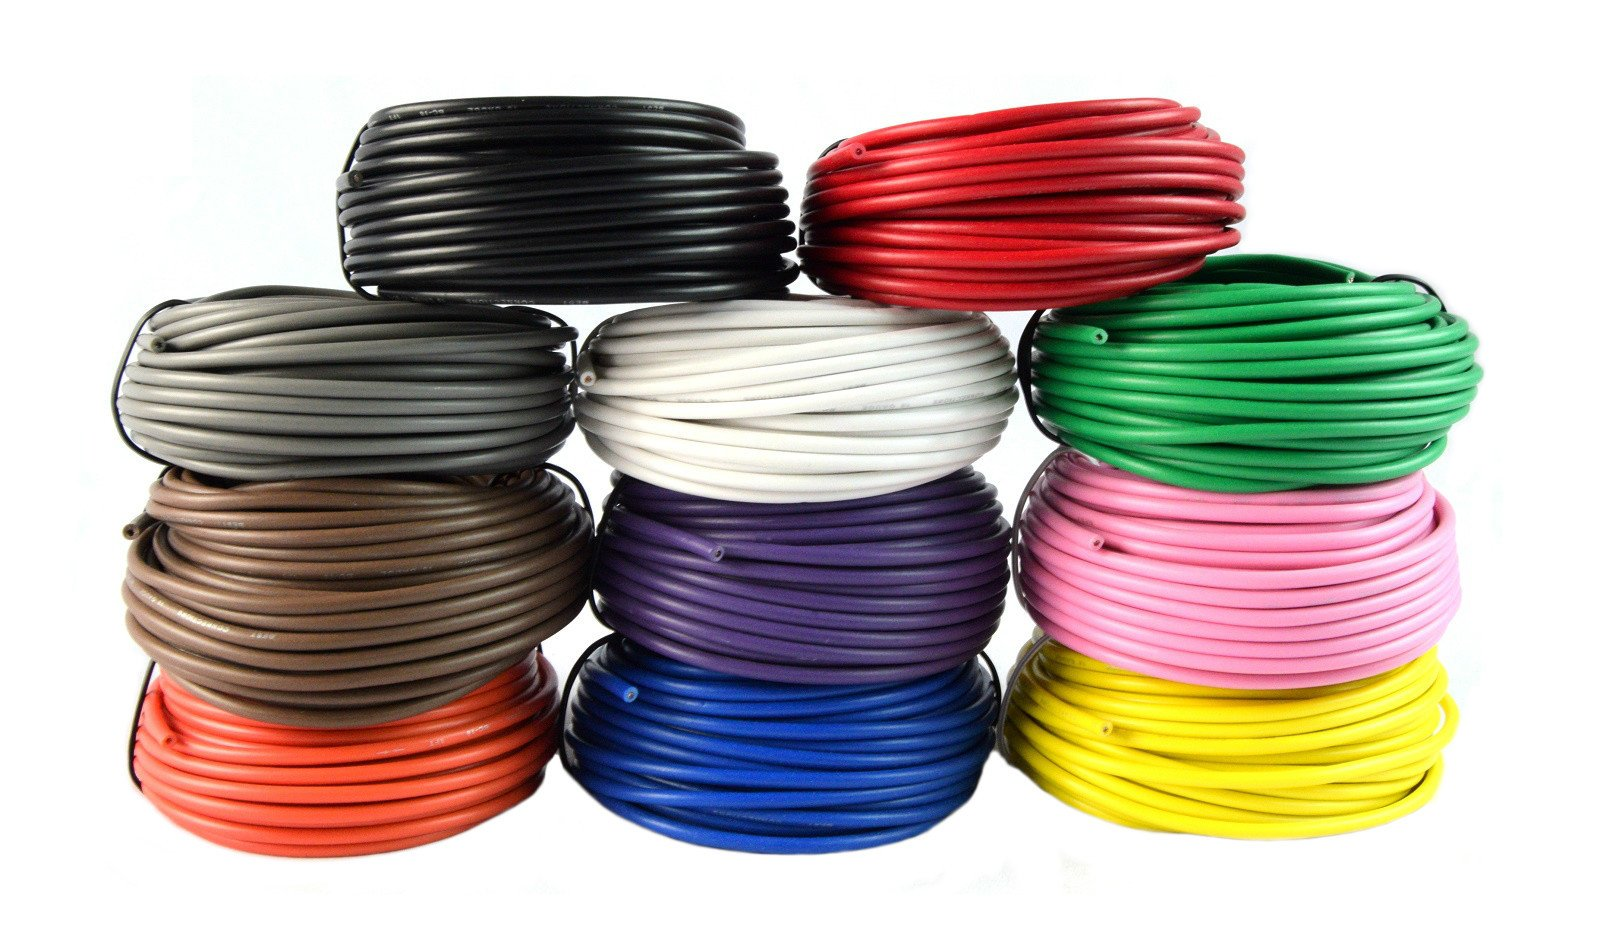 18 Gauge Single Conductor Stranded Remote Primary Wire 11 Rolls 12 Volt 25 Feet Each